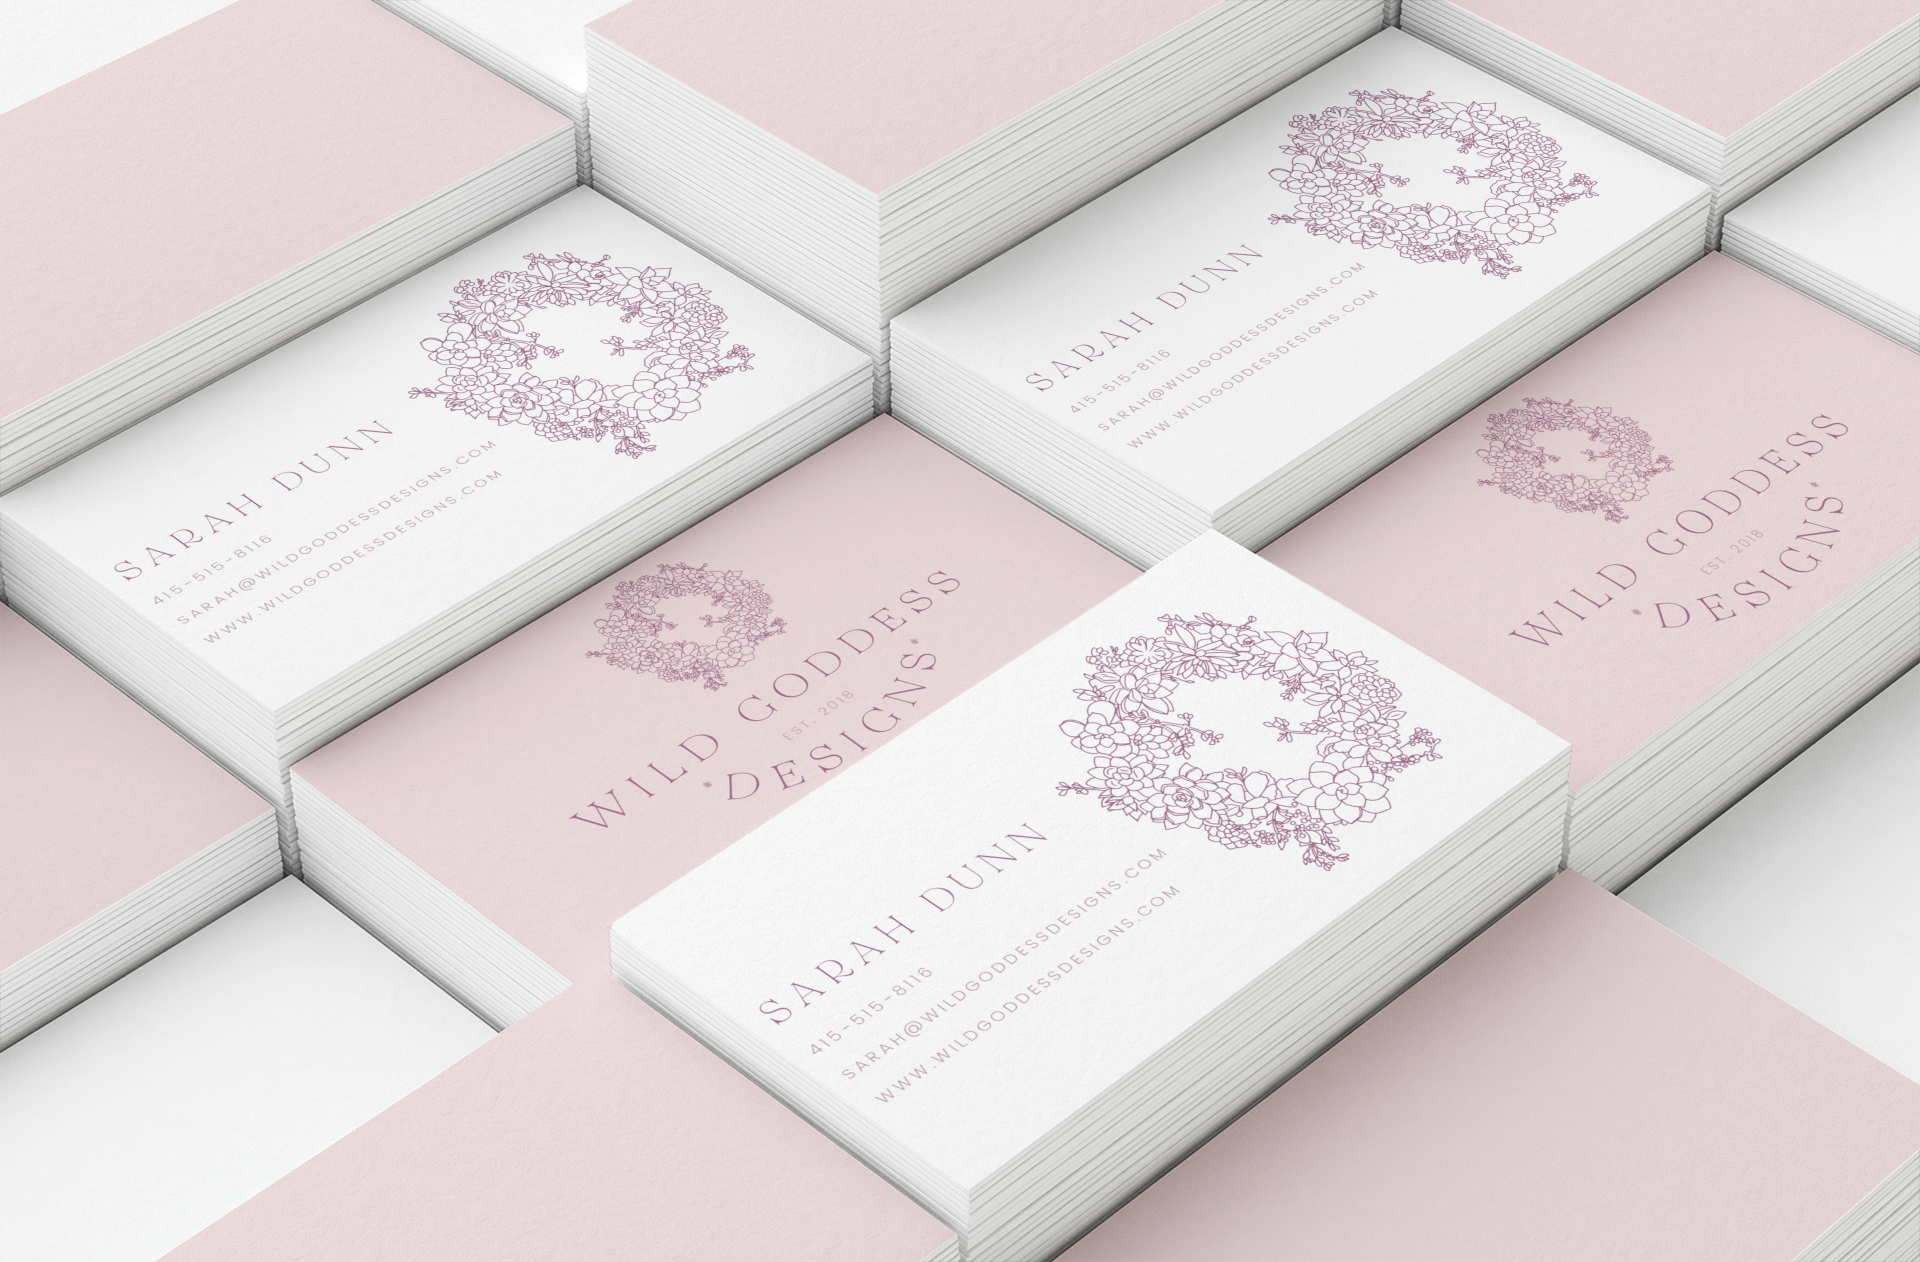 mockup-of-different-sized-piles-of-business-cards-42-el.png